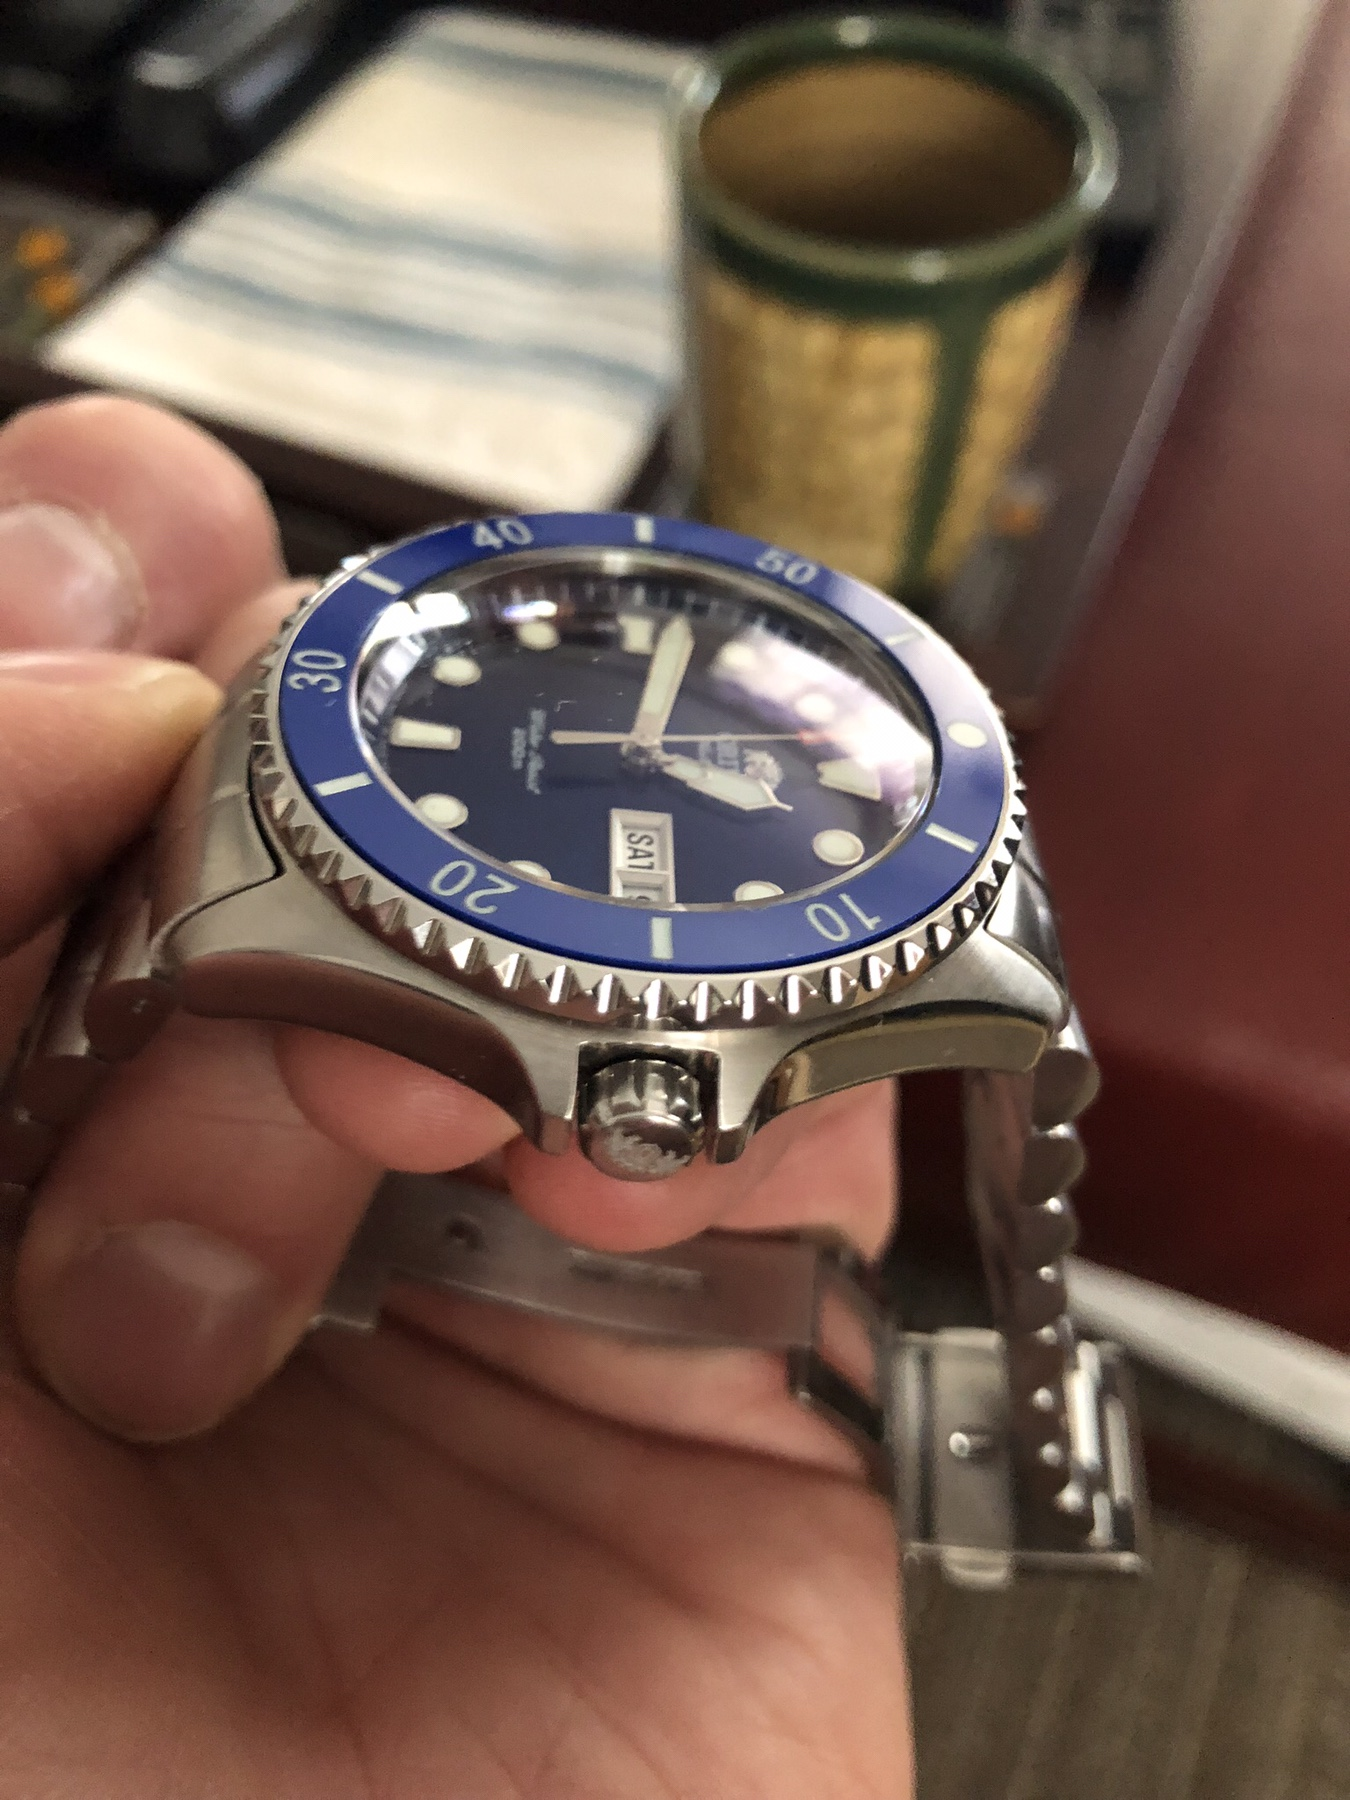 Double domed crystal with Yobokies bezel/inserts?